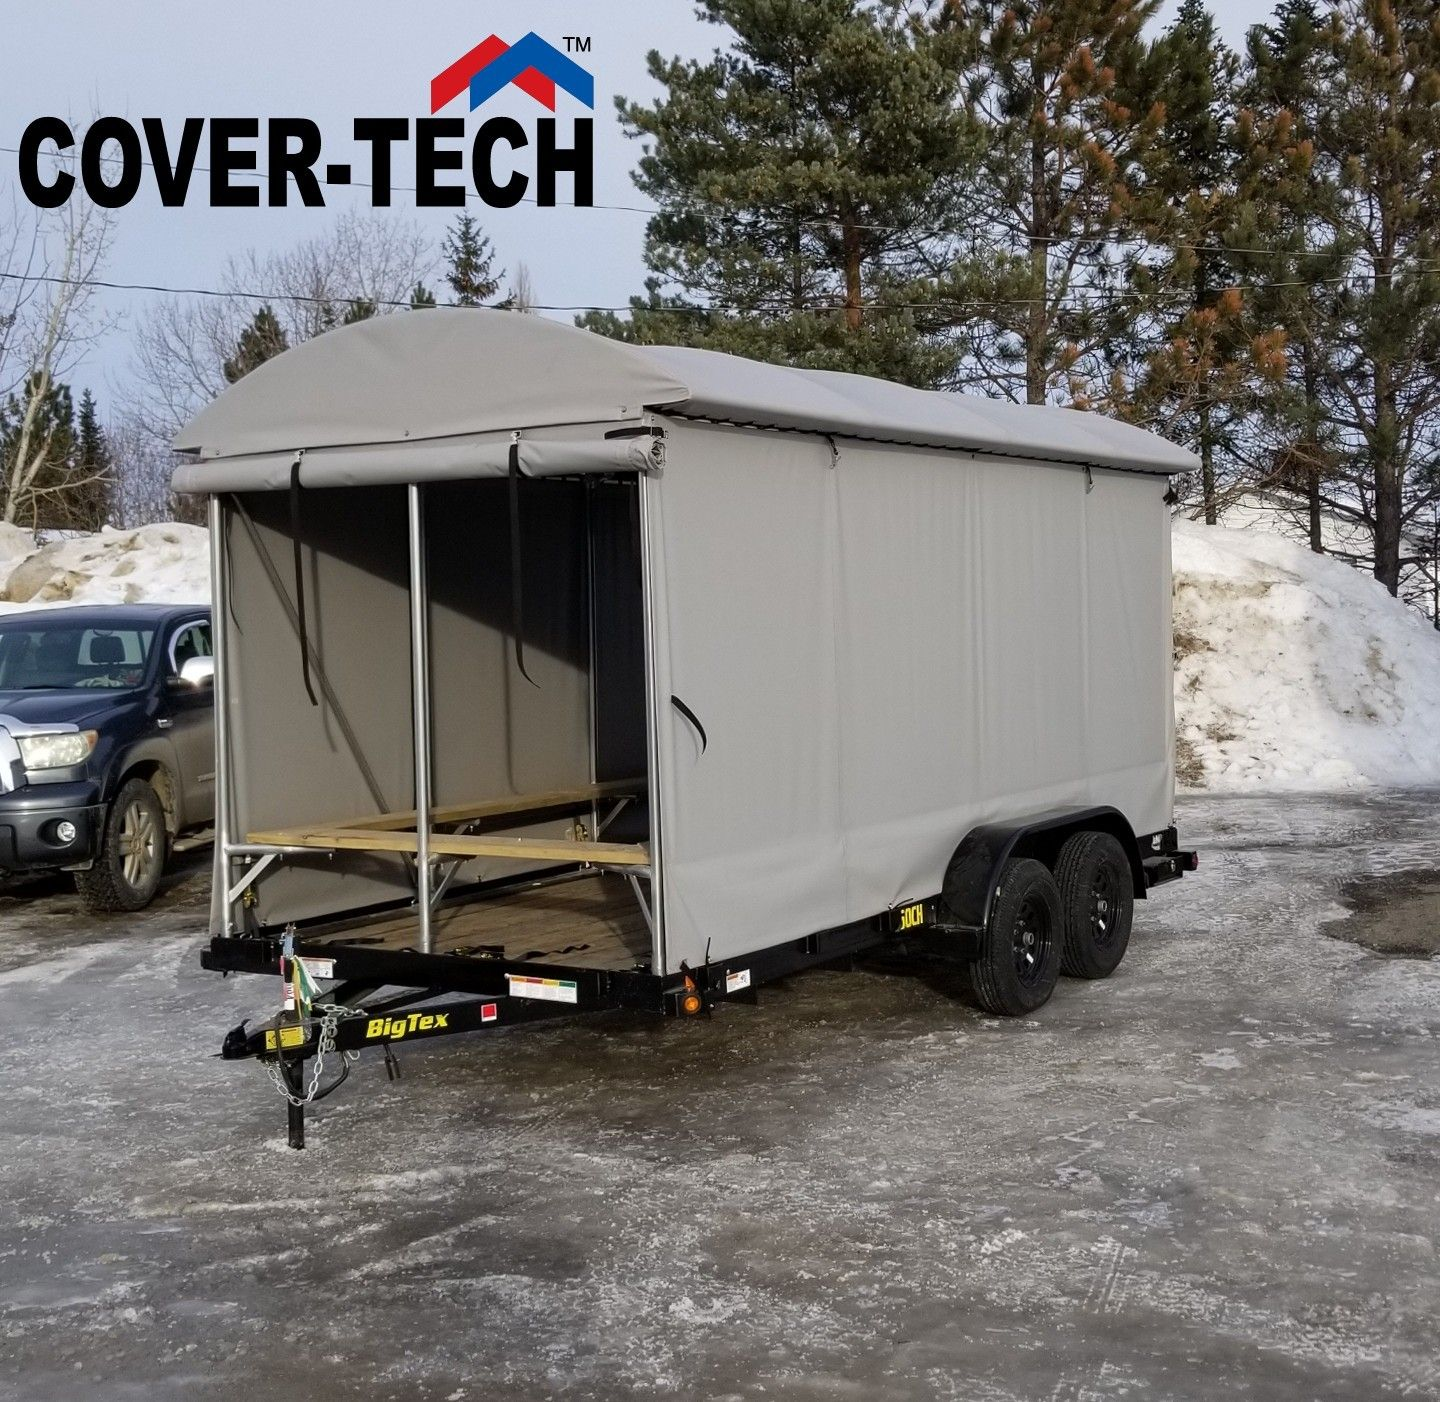 Turn your flatbed trailer into an enclosed trailer. DYI